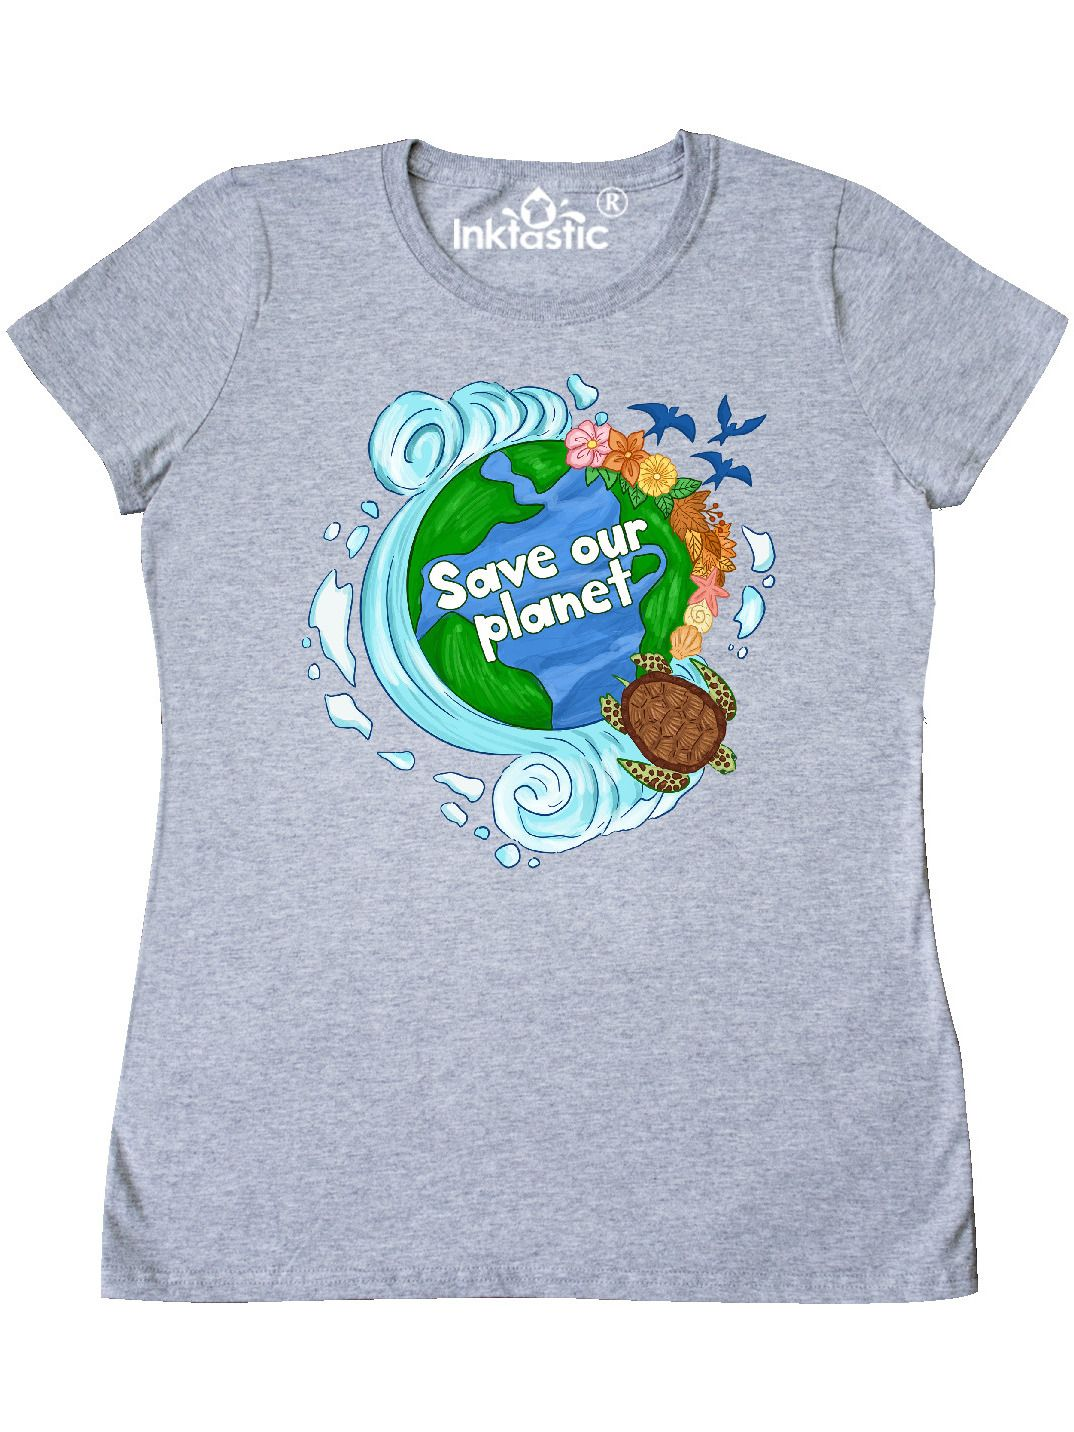 Inktastic Earth Day Save Our Planet Turtle And Birds Women S T Shirt Walmart Com In 2021 Earth Shirt T Shirts For Women Our Planet